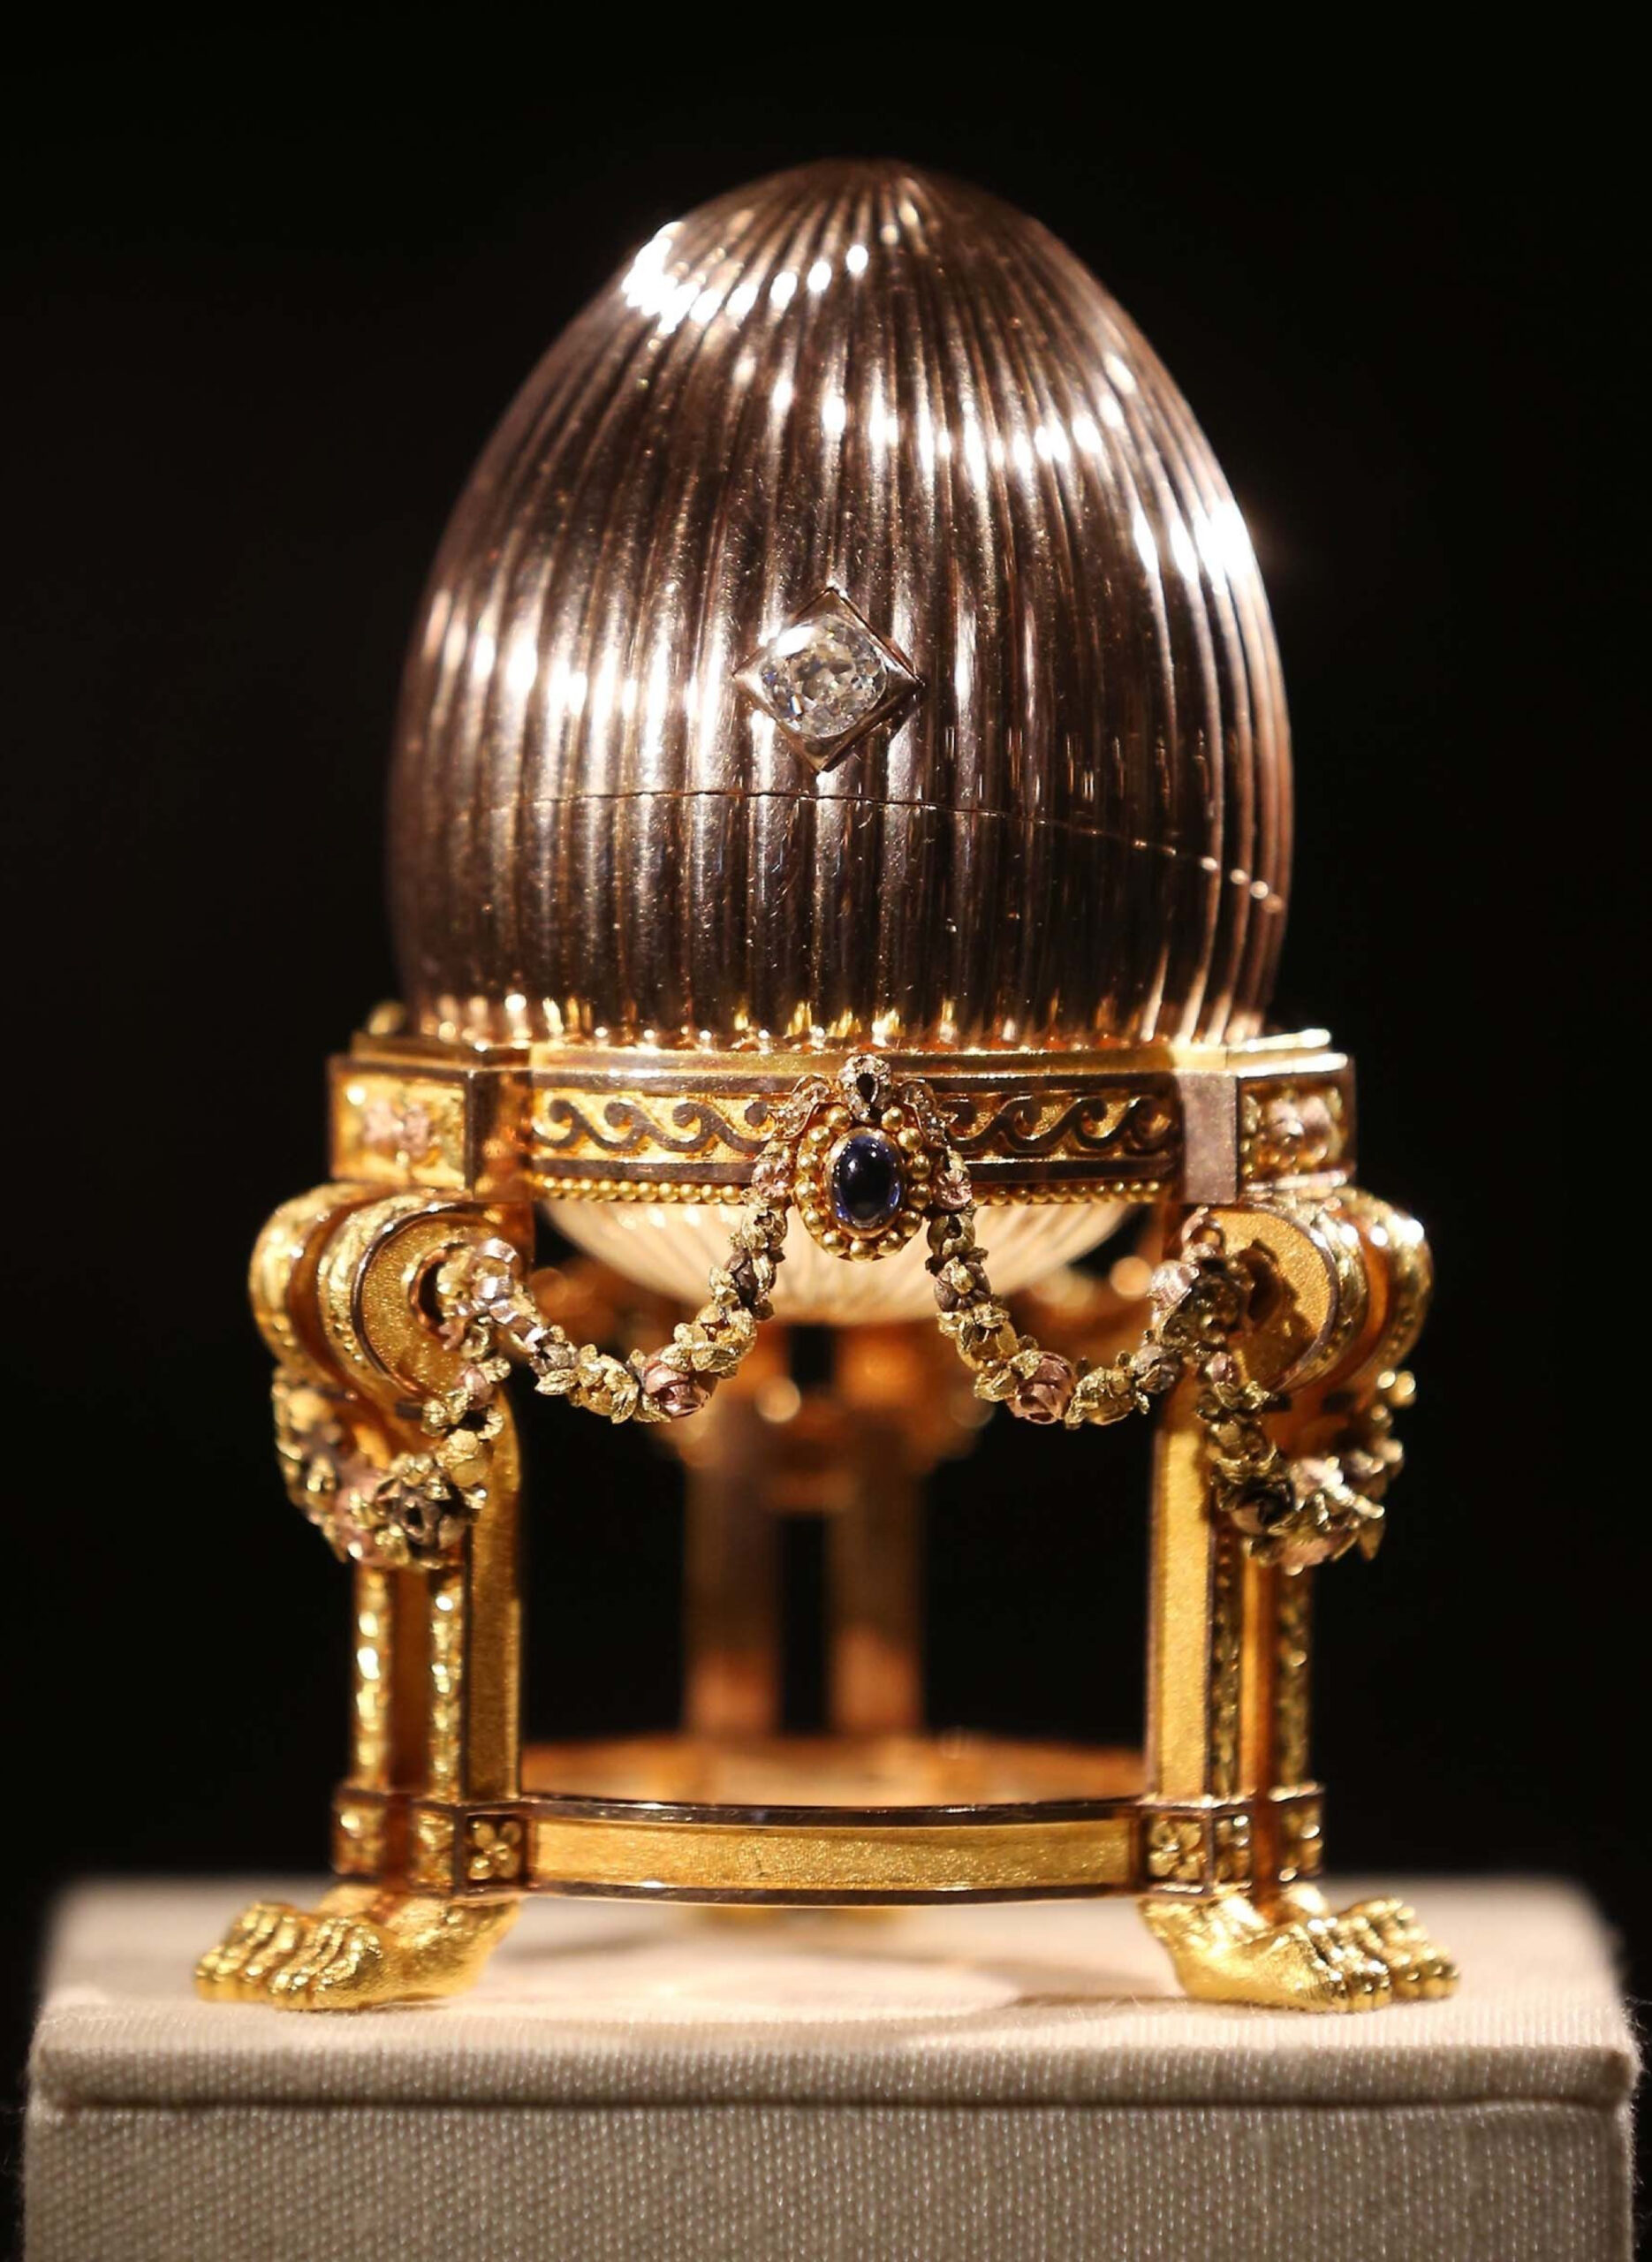 Faberge's third egg cover photo